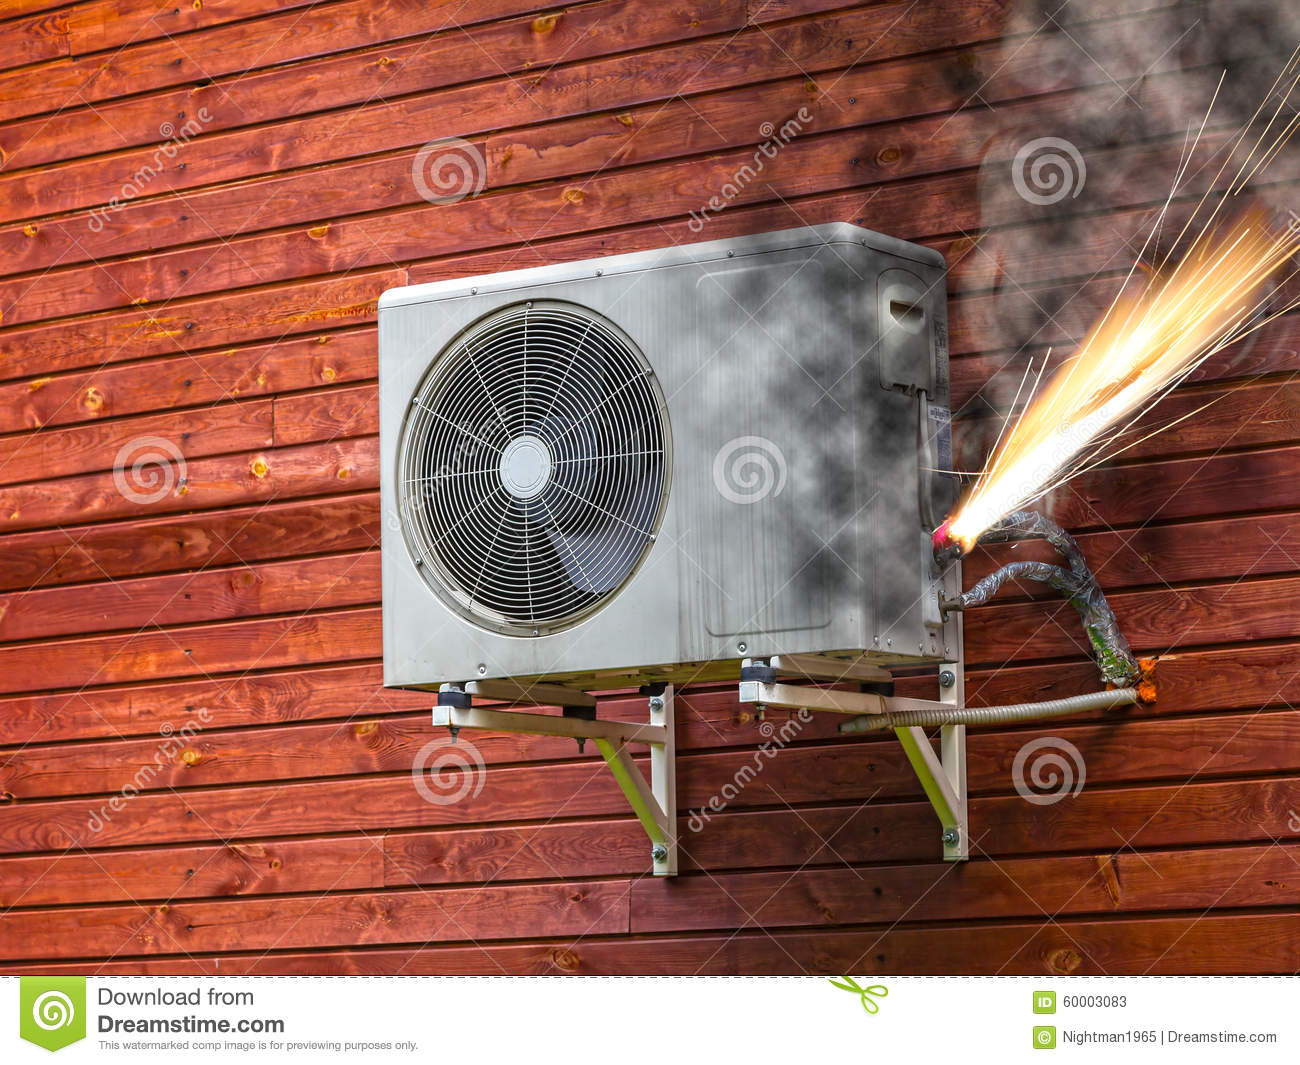 Air Conditioner On Fire Stock Photo Image 60003083